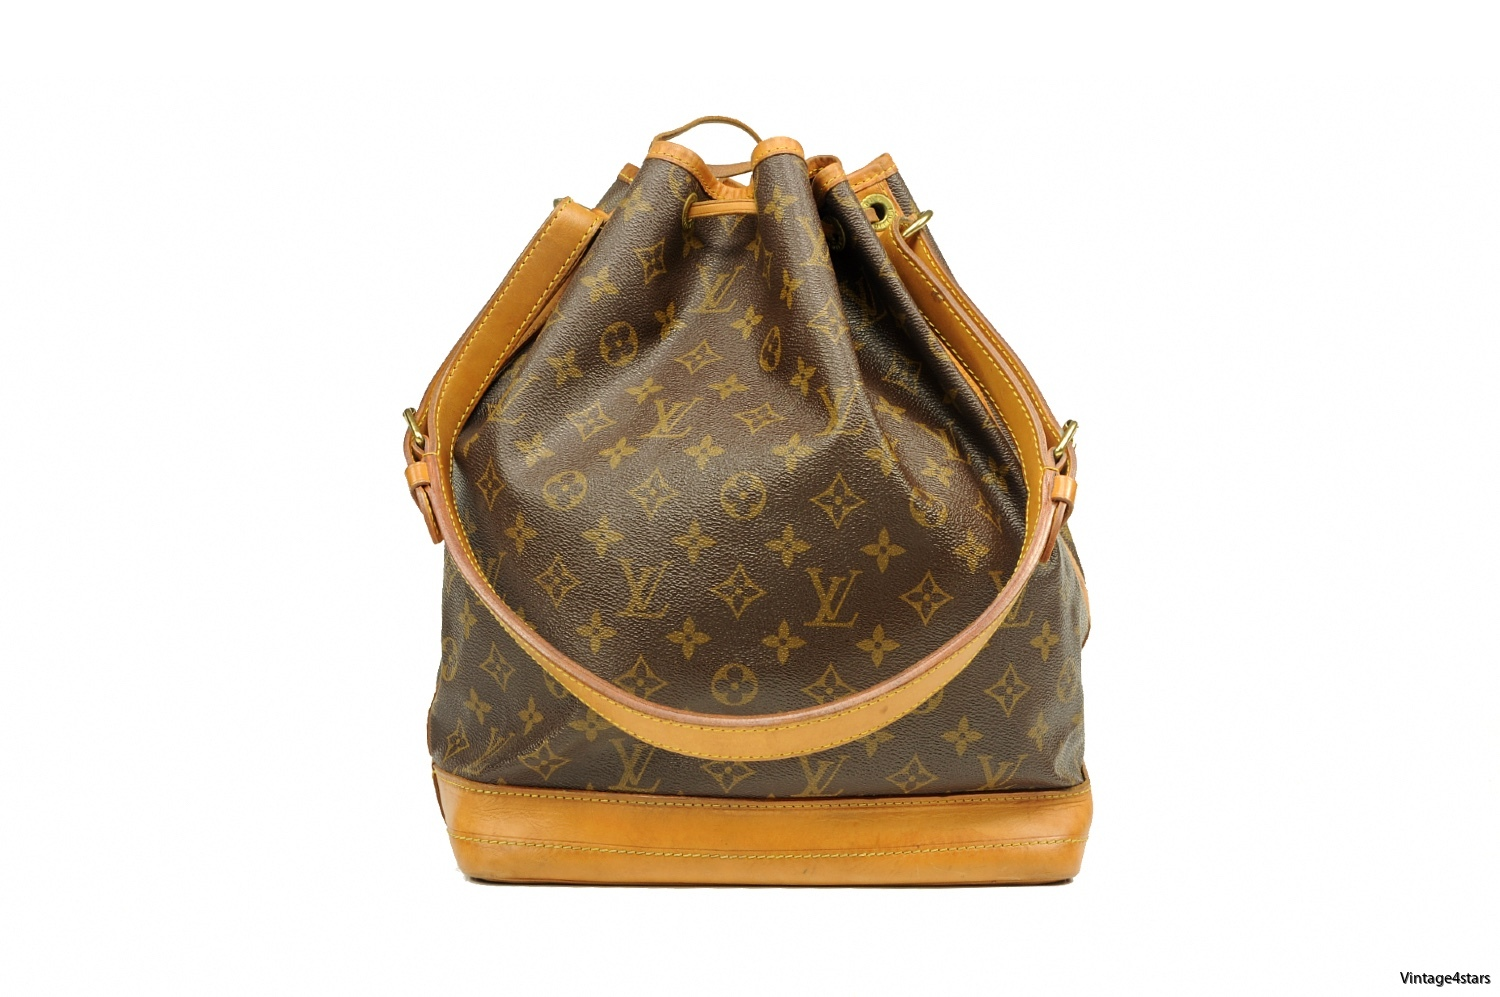 LOUIS VUITTON NOÉ 1